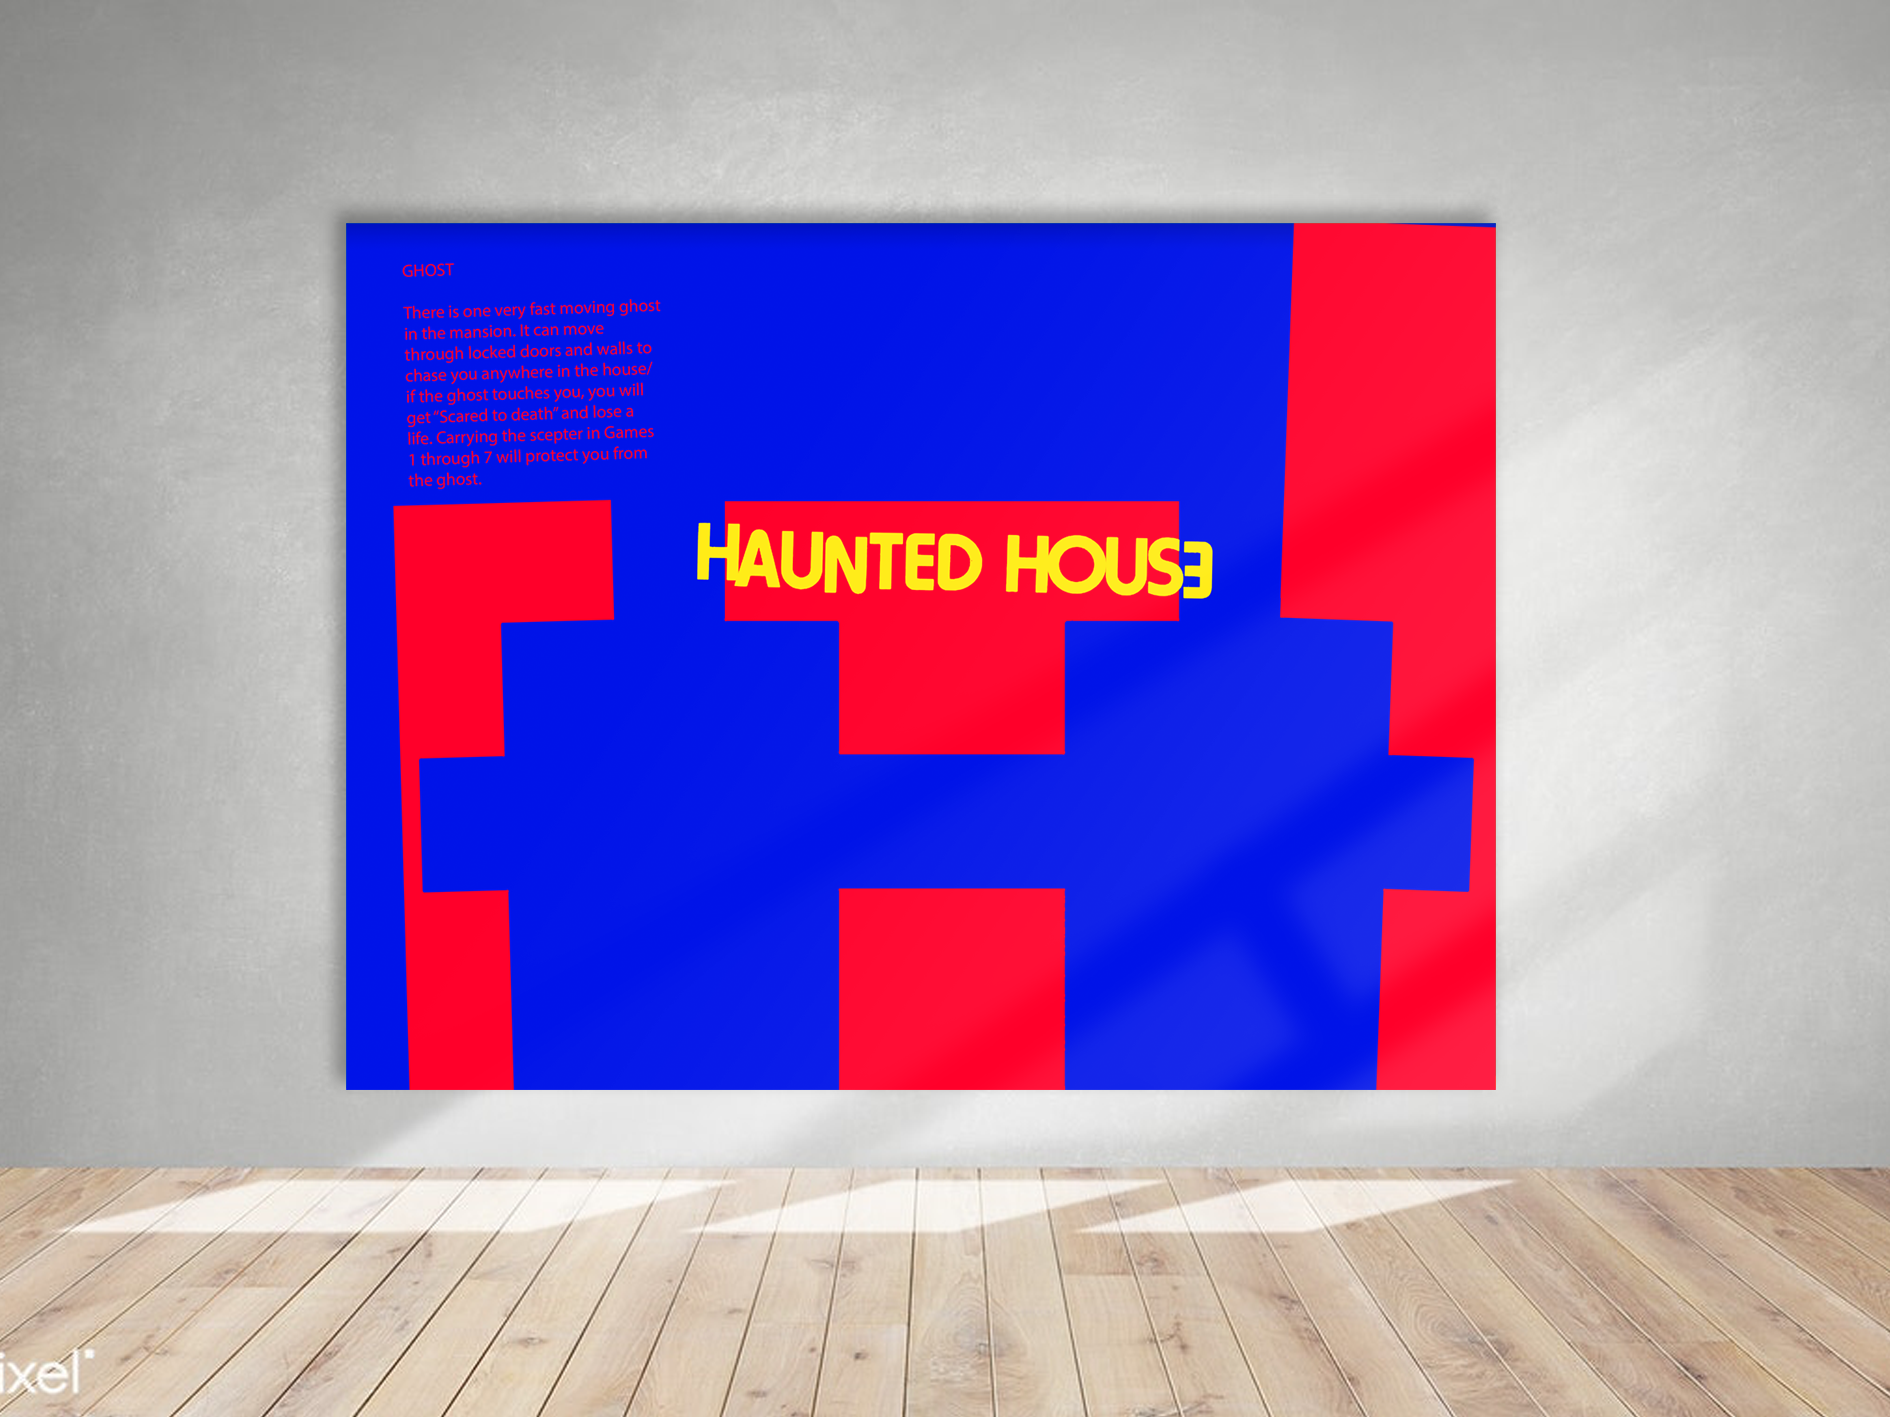 Haunted House (house).png